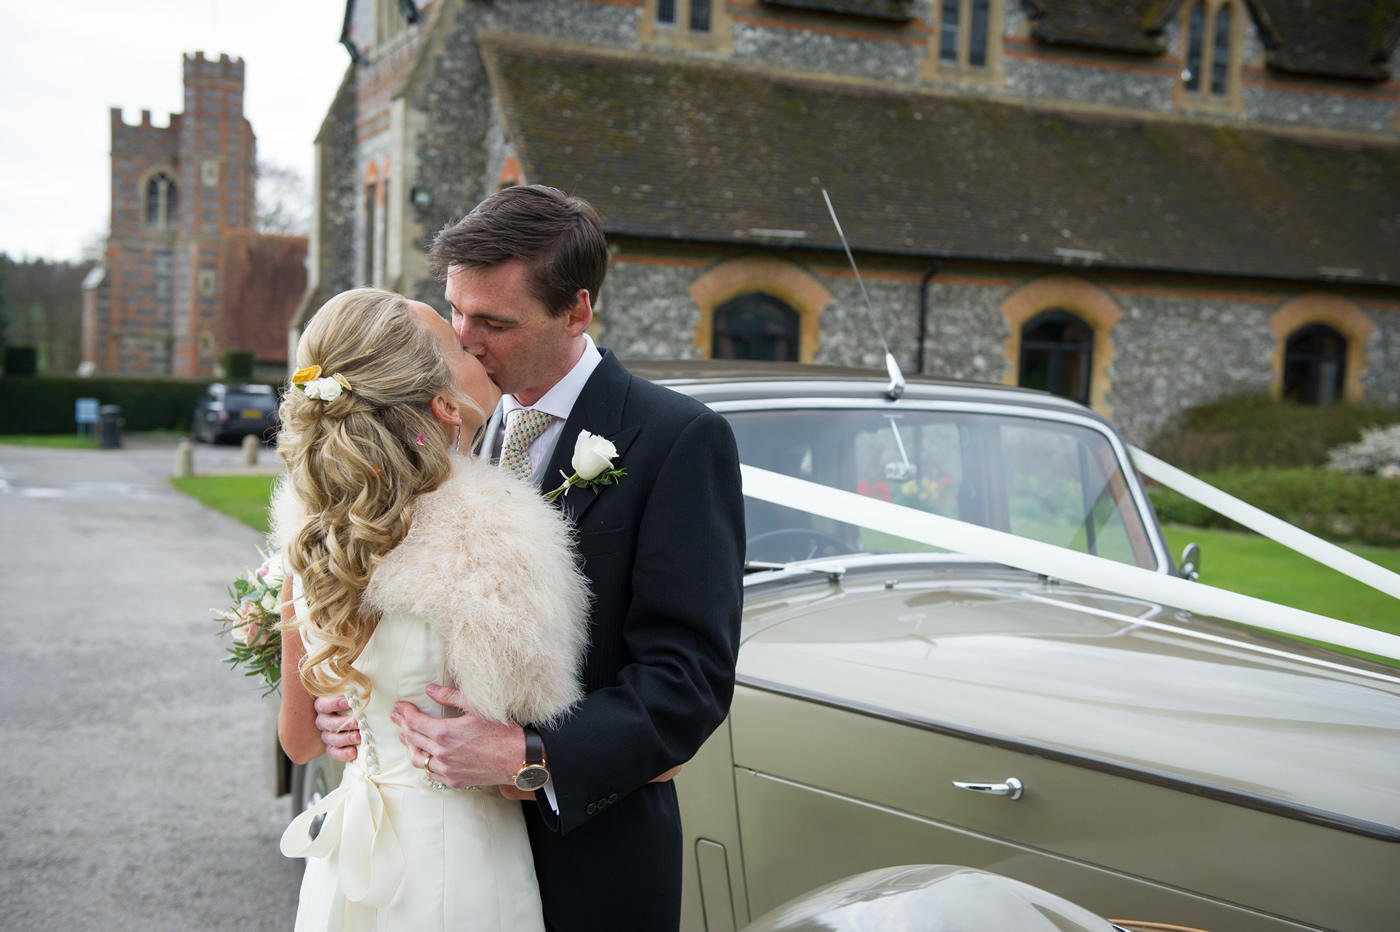 Bride & Groom Wedding Photograph Kissing Next To Car - Hair & Makeup For Bride in Berkshire, Surrey & surrounding areas